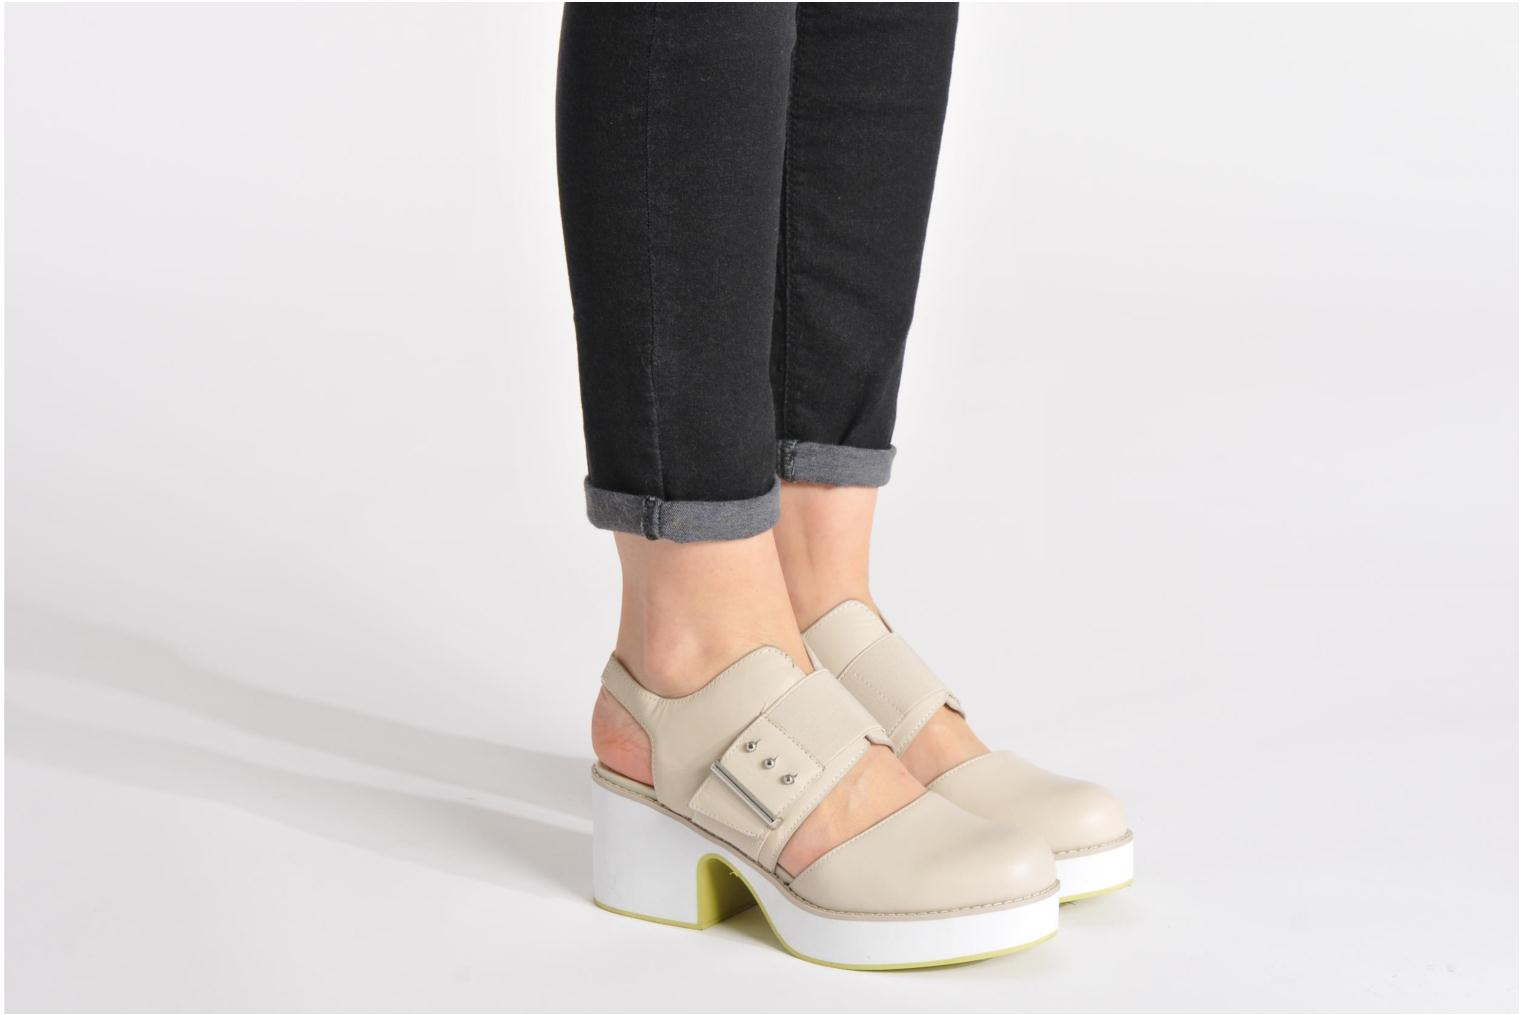 Sandals Shellys London Costain Beige view from underneath / model view